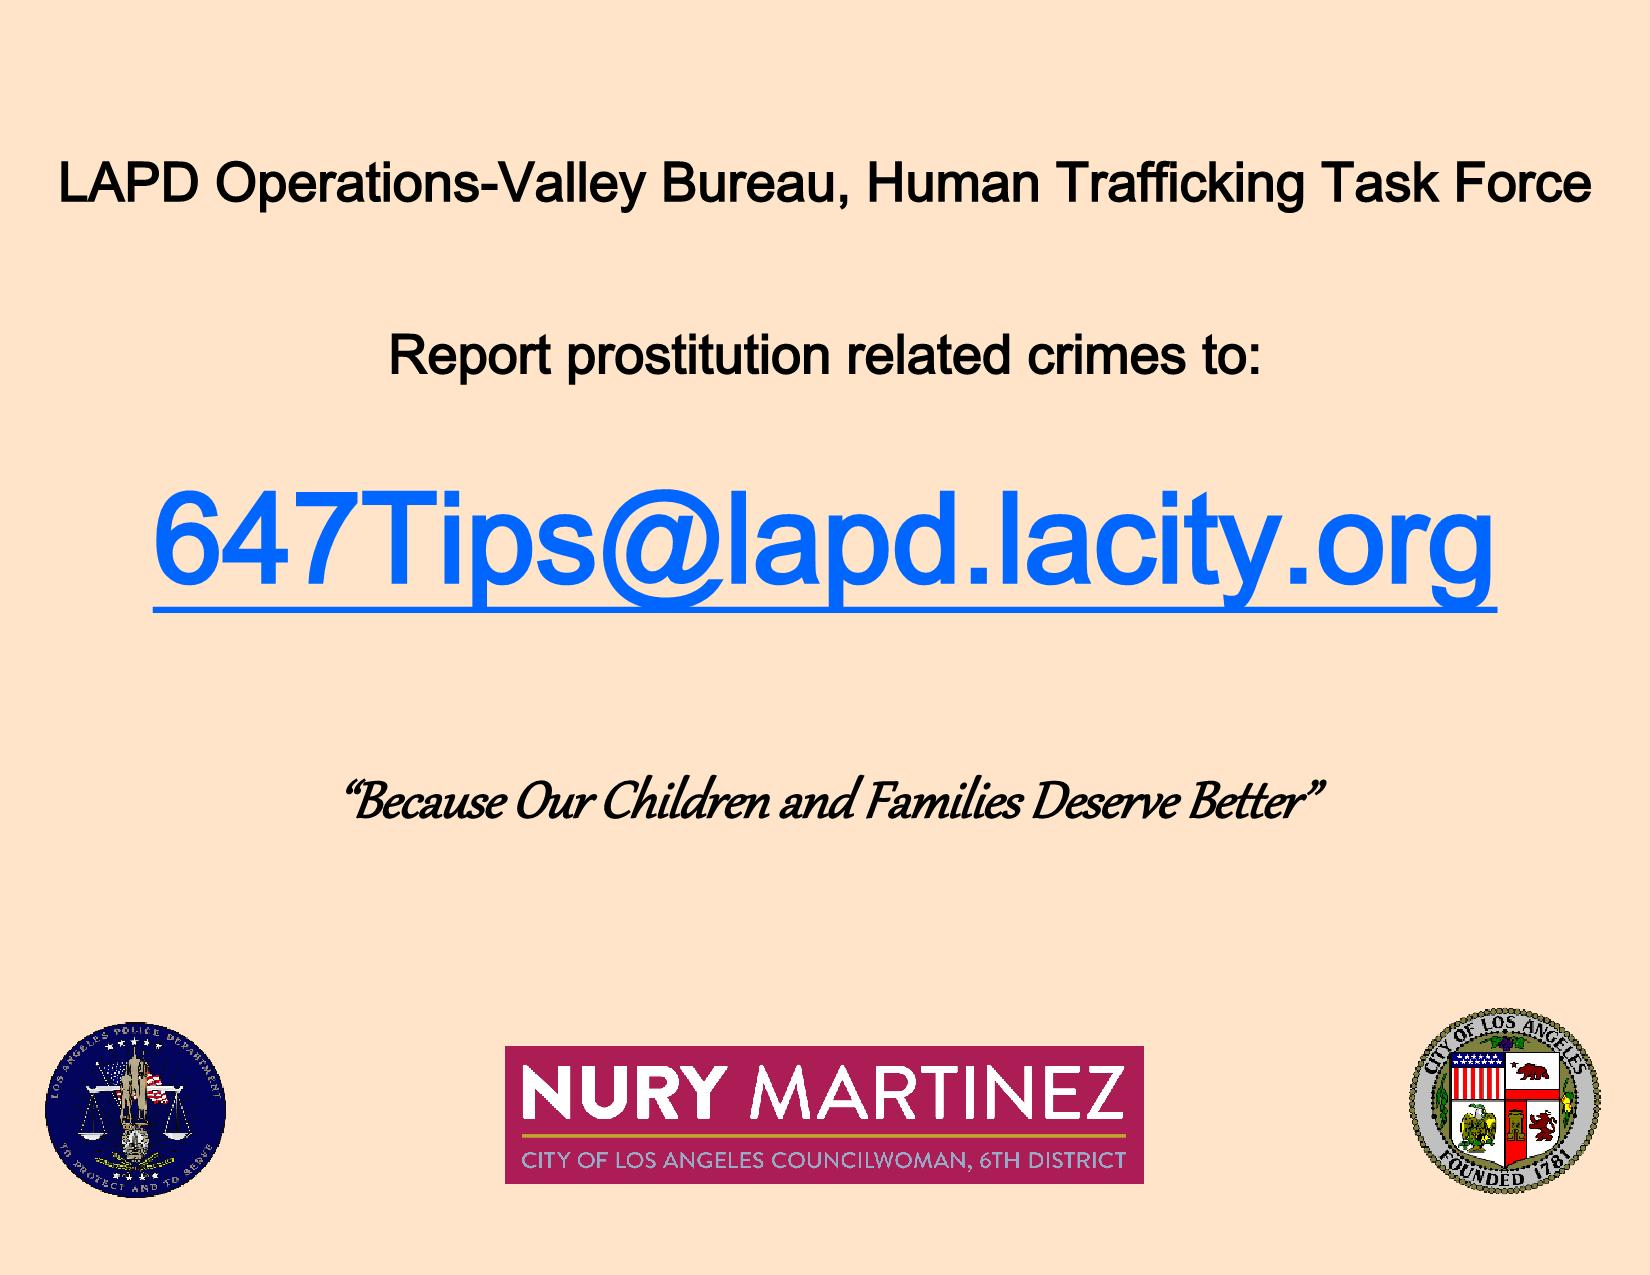 LAPD Human Trafficking Task Force Board 11-19-2015_page_1